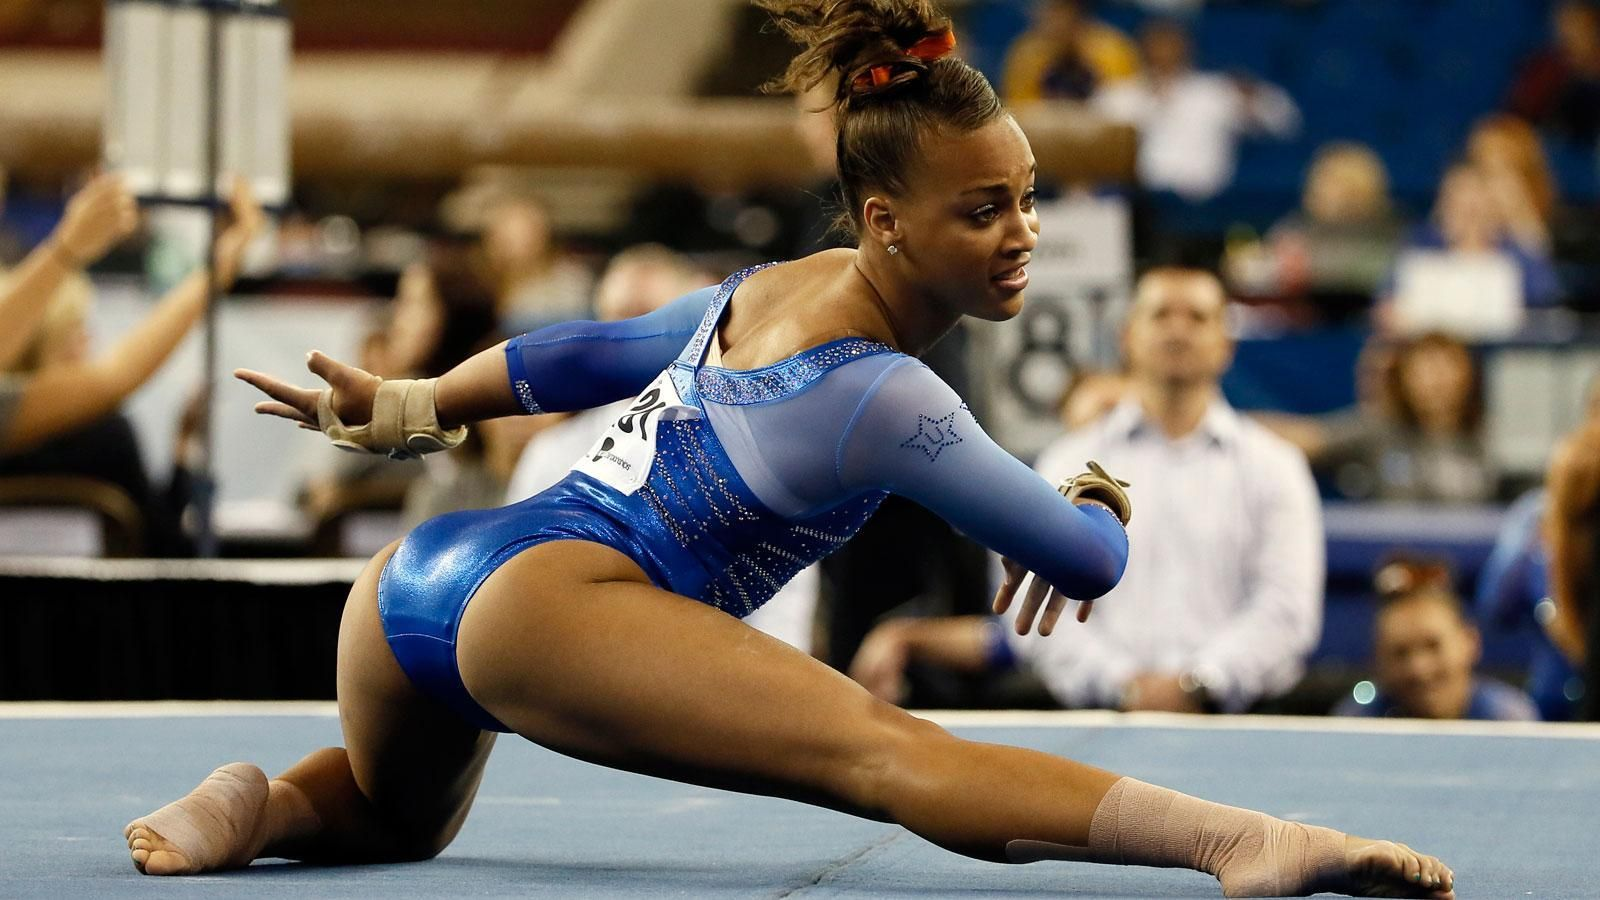 UF's Hunter wins NCAA floor exercise title